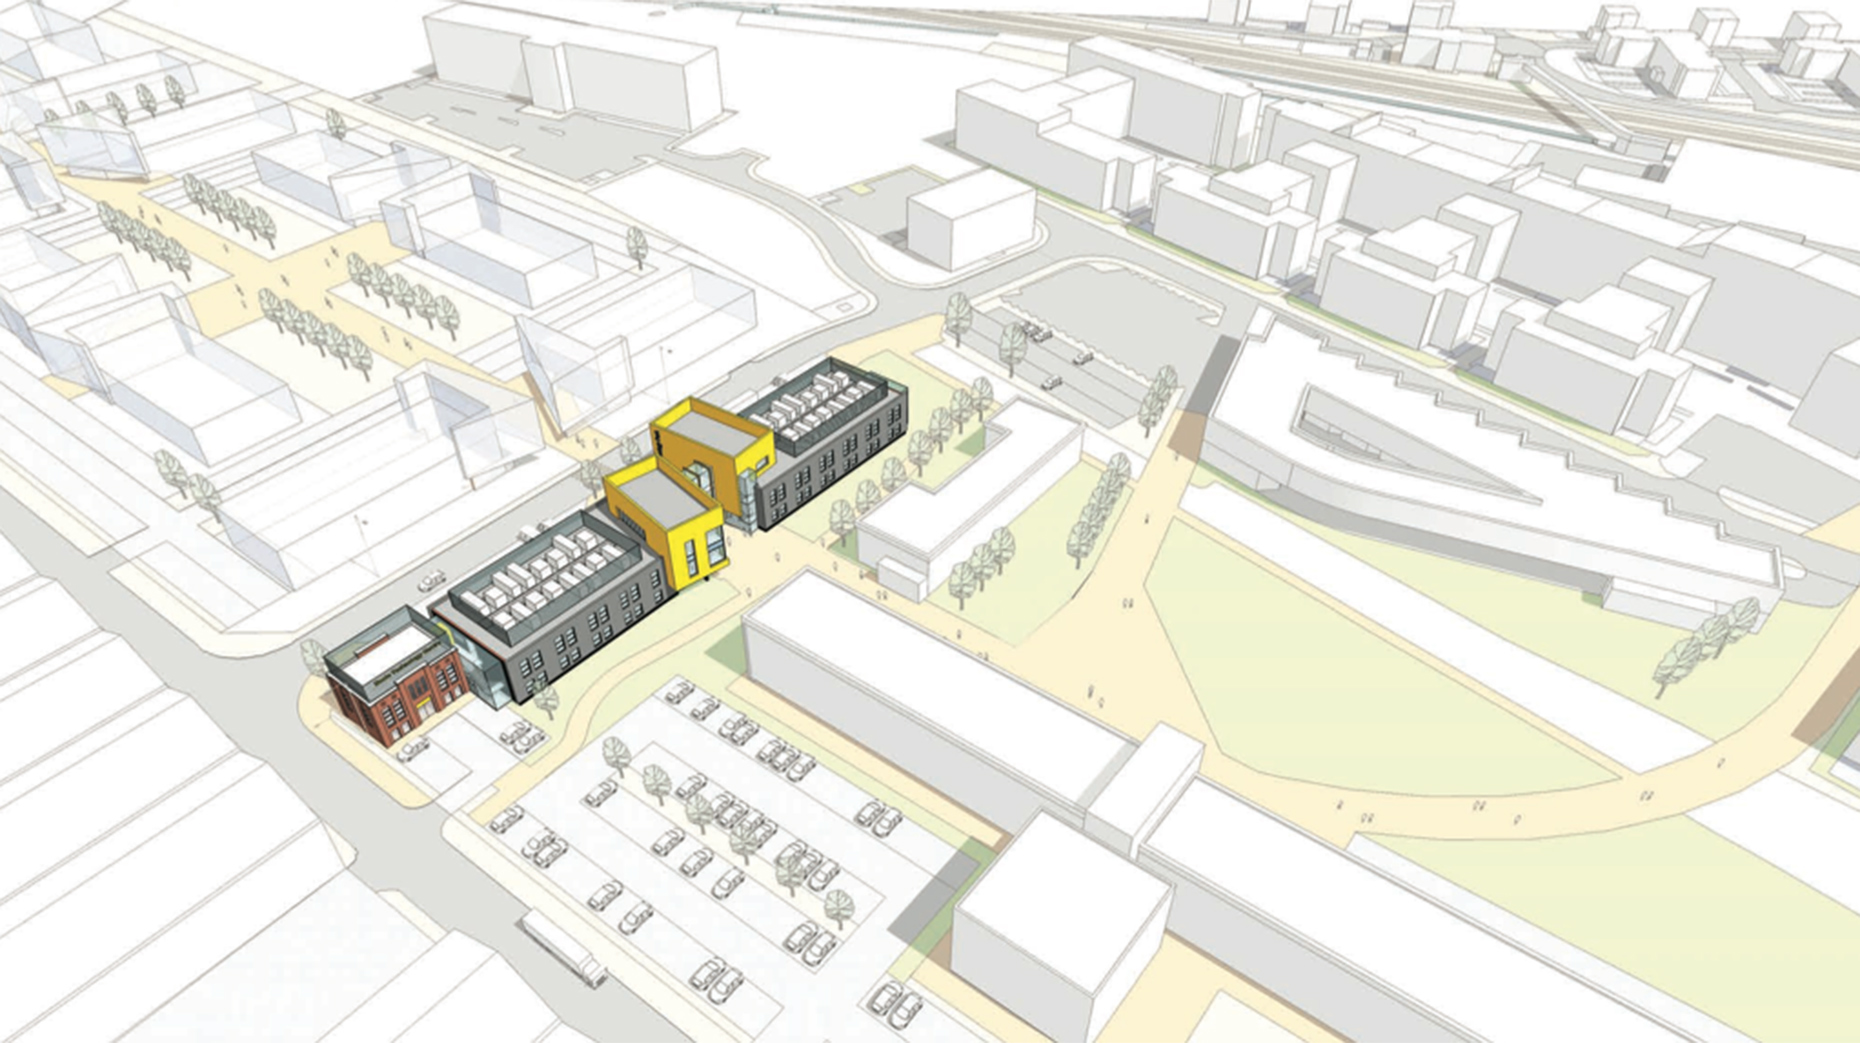 The Boole Technology Centre will complete phase one of the £50 million masterplan, acting as a physical gateway to phase two.